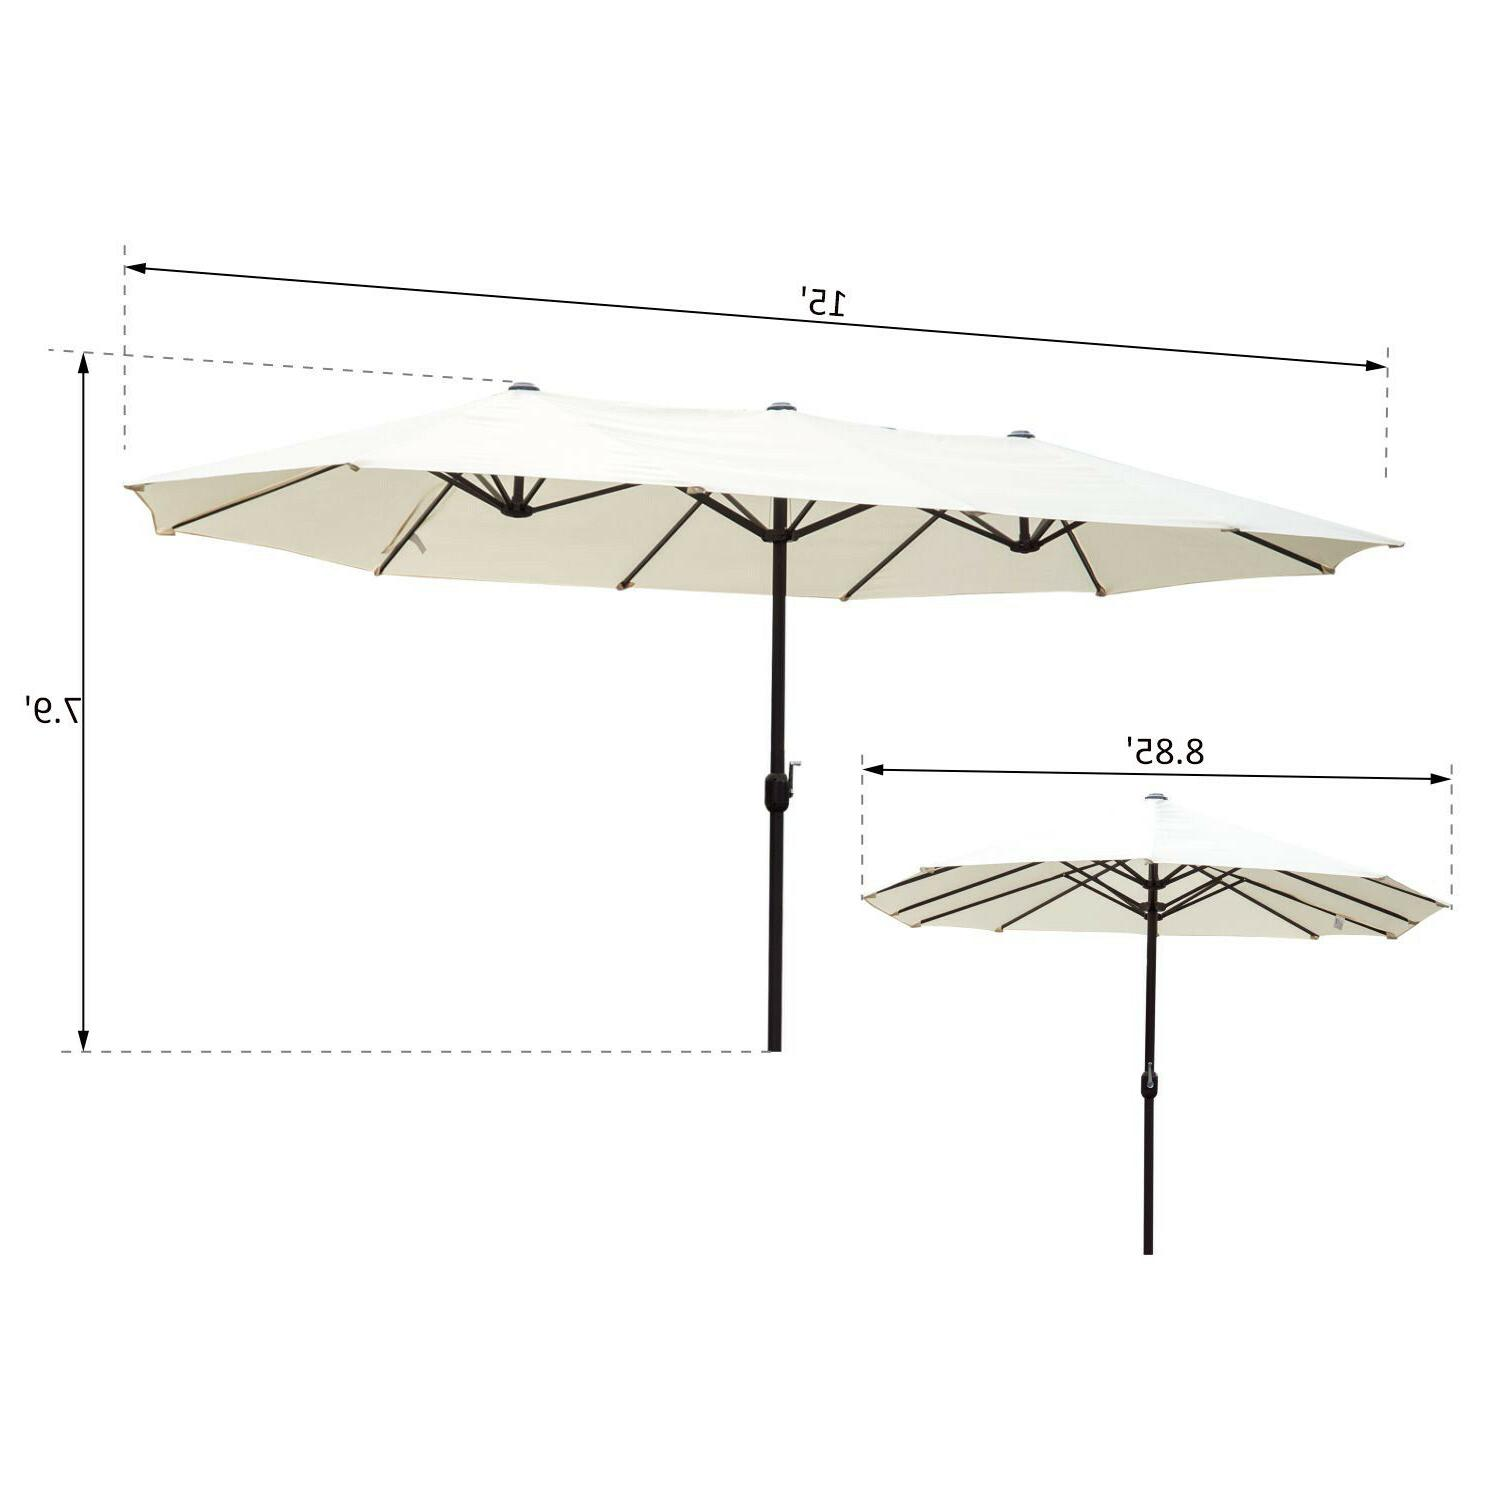 15' Double-Sided Shade